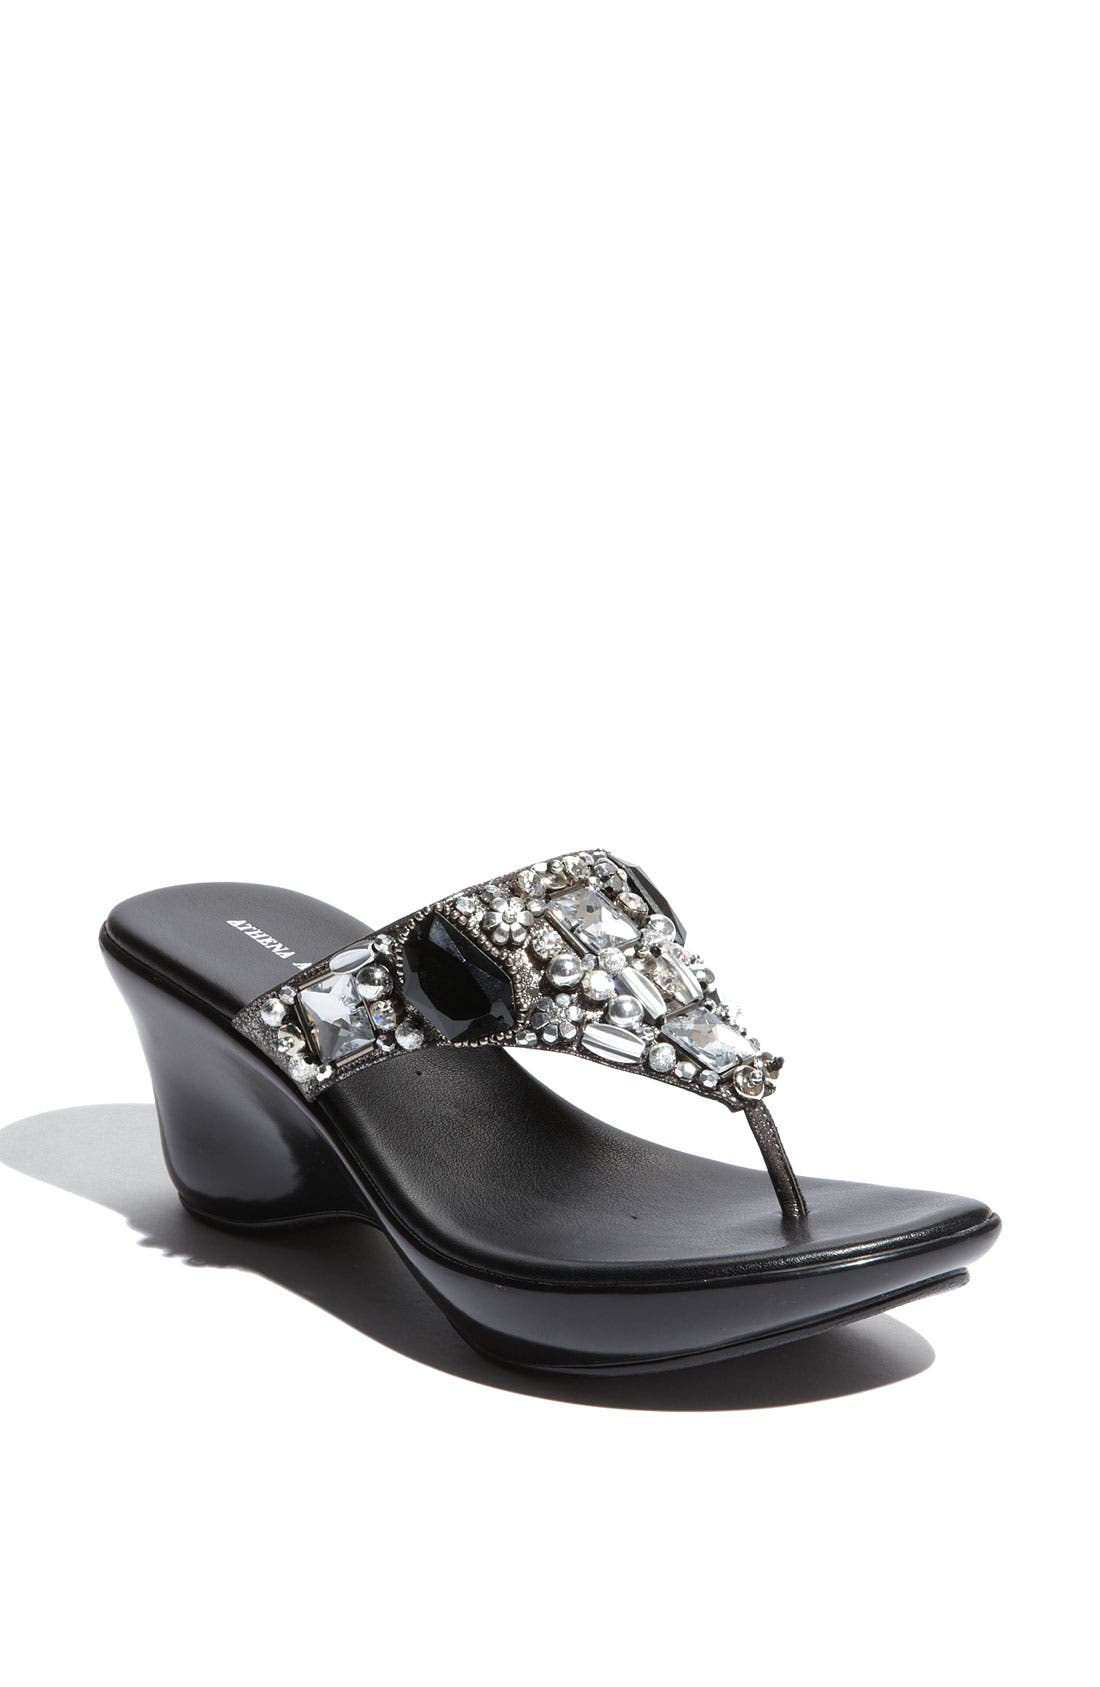 Alternate Image 1 Selected - Athena Alexander 'Suni' Wedge Sandal